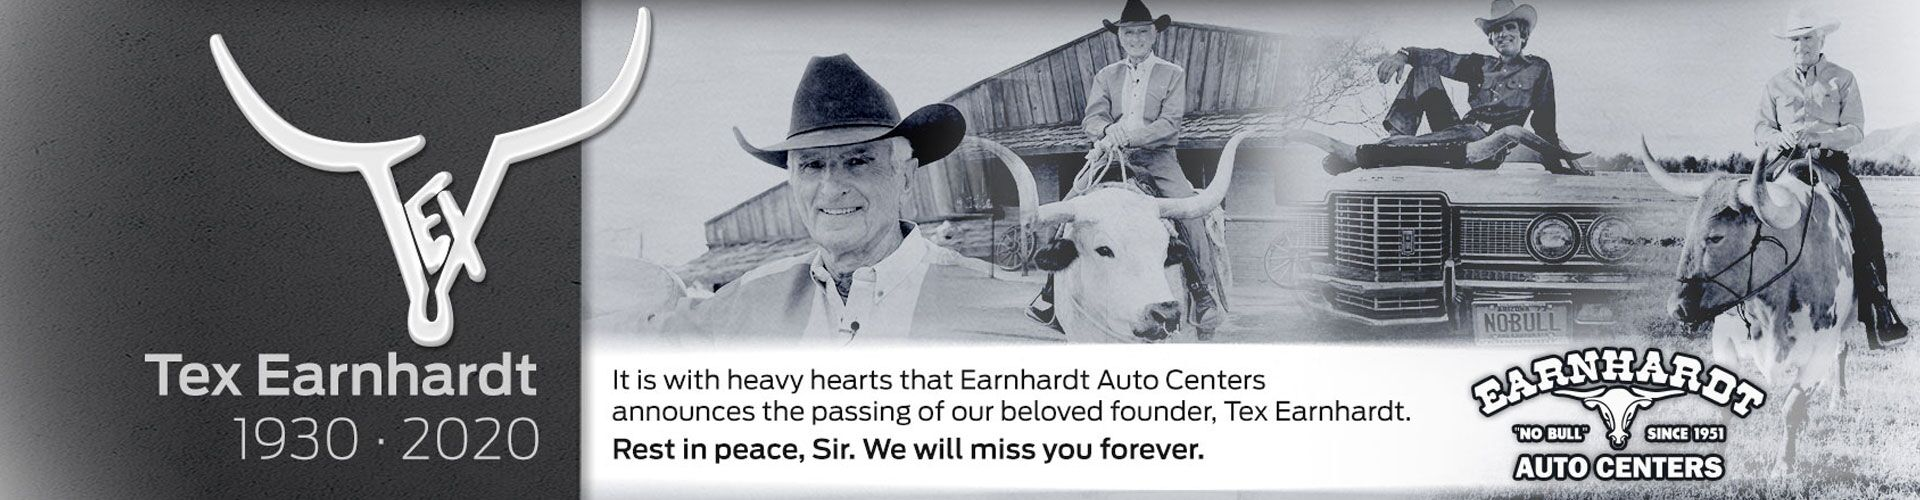 Passing of Tex Earnhardt